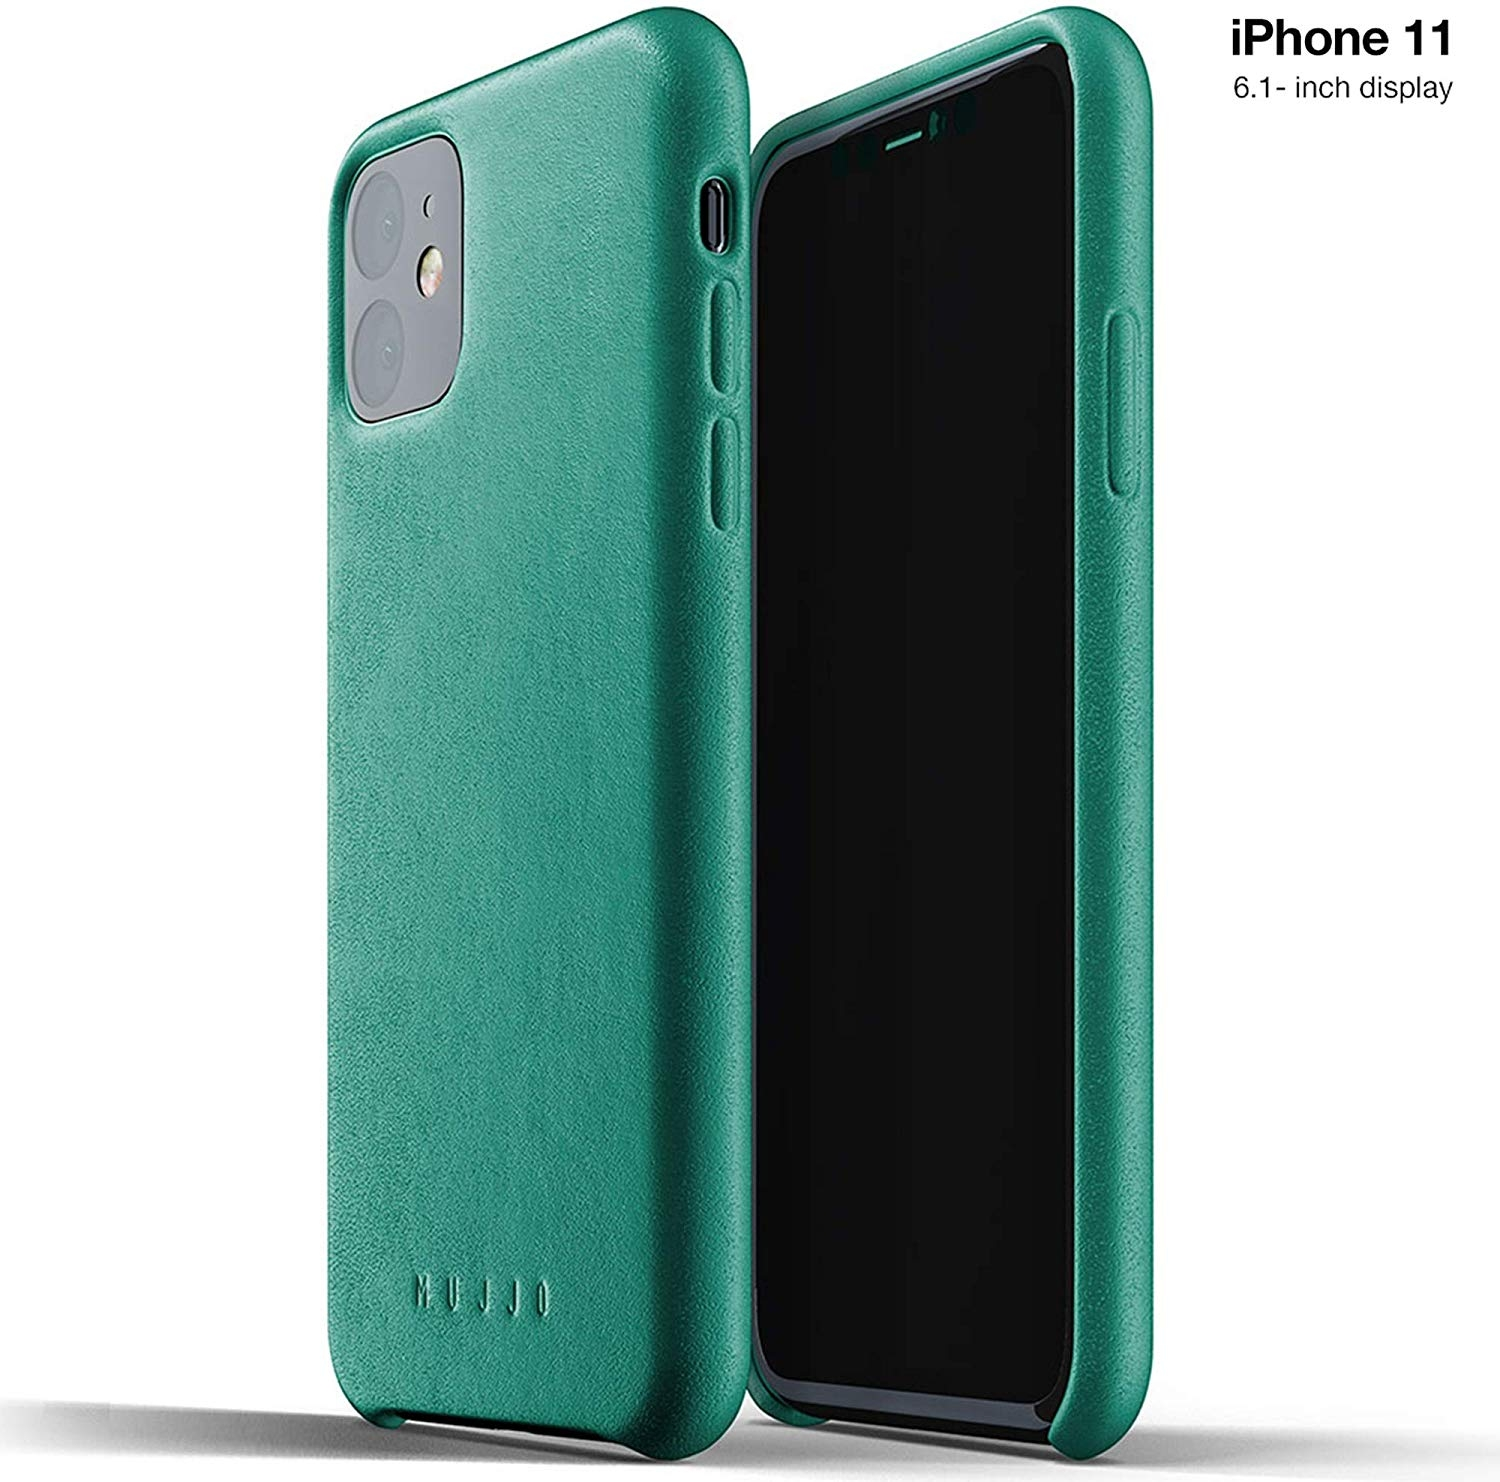 MUJJO Full Leather Case - Δερμάτινη Θήκη iPhone 11 - Alpine Green (MUJJO-CL-005-GR)